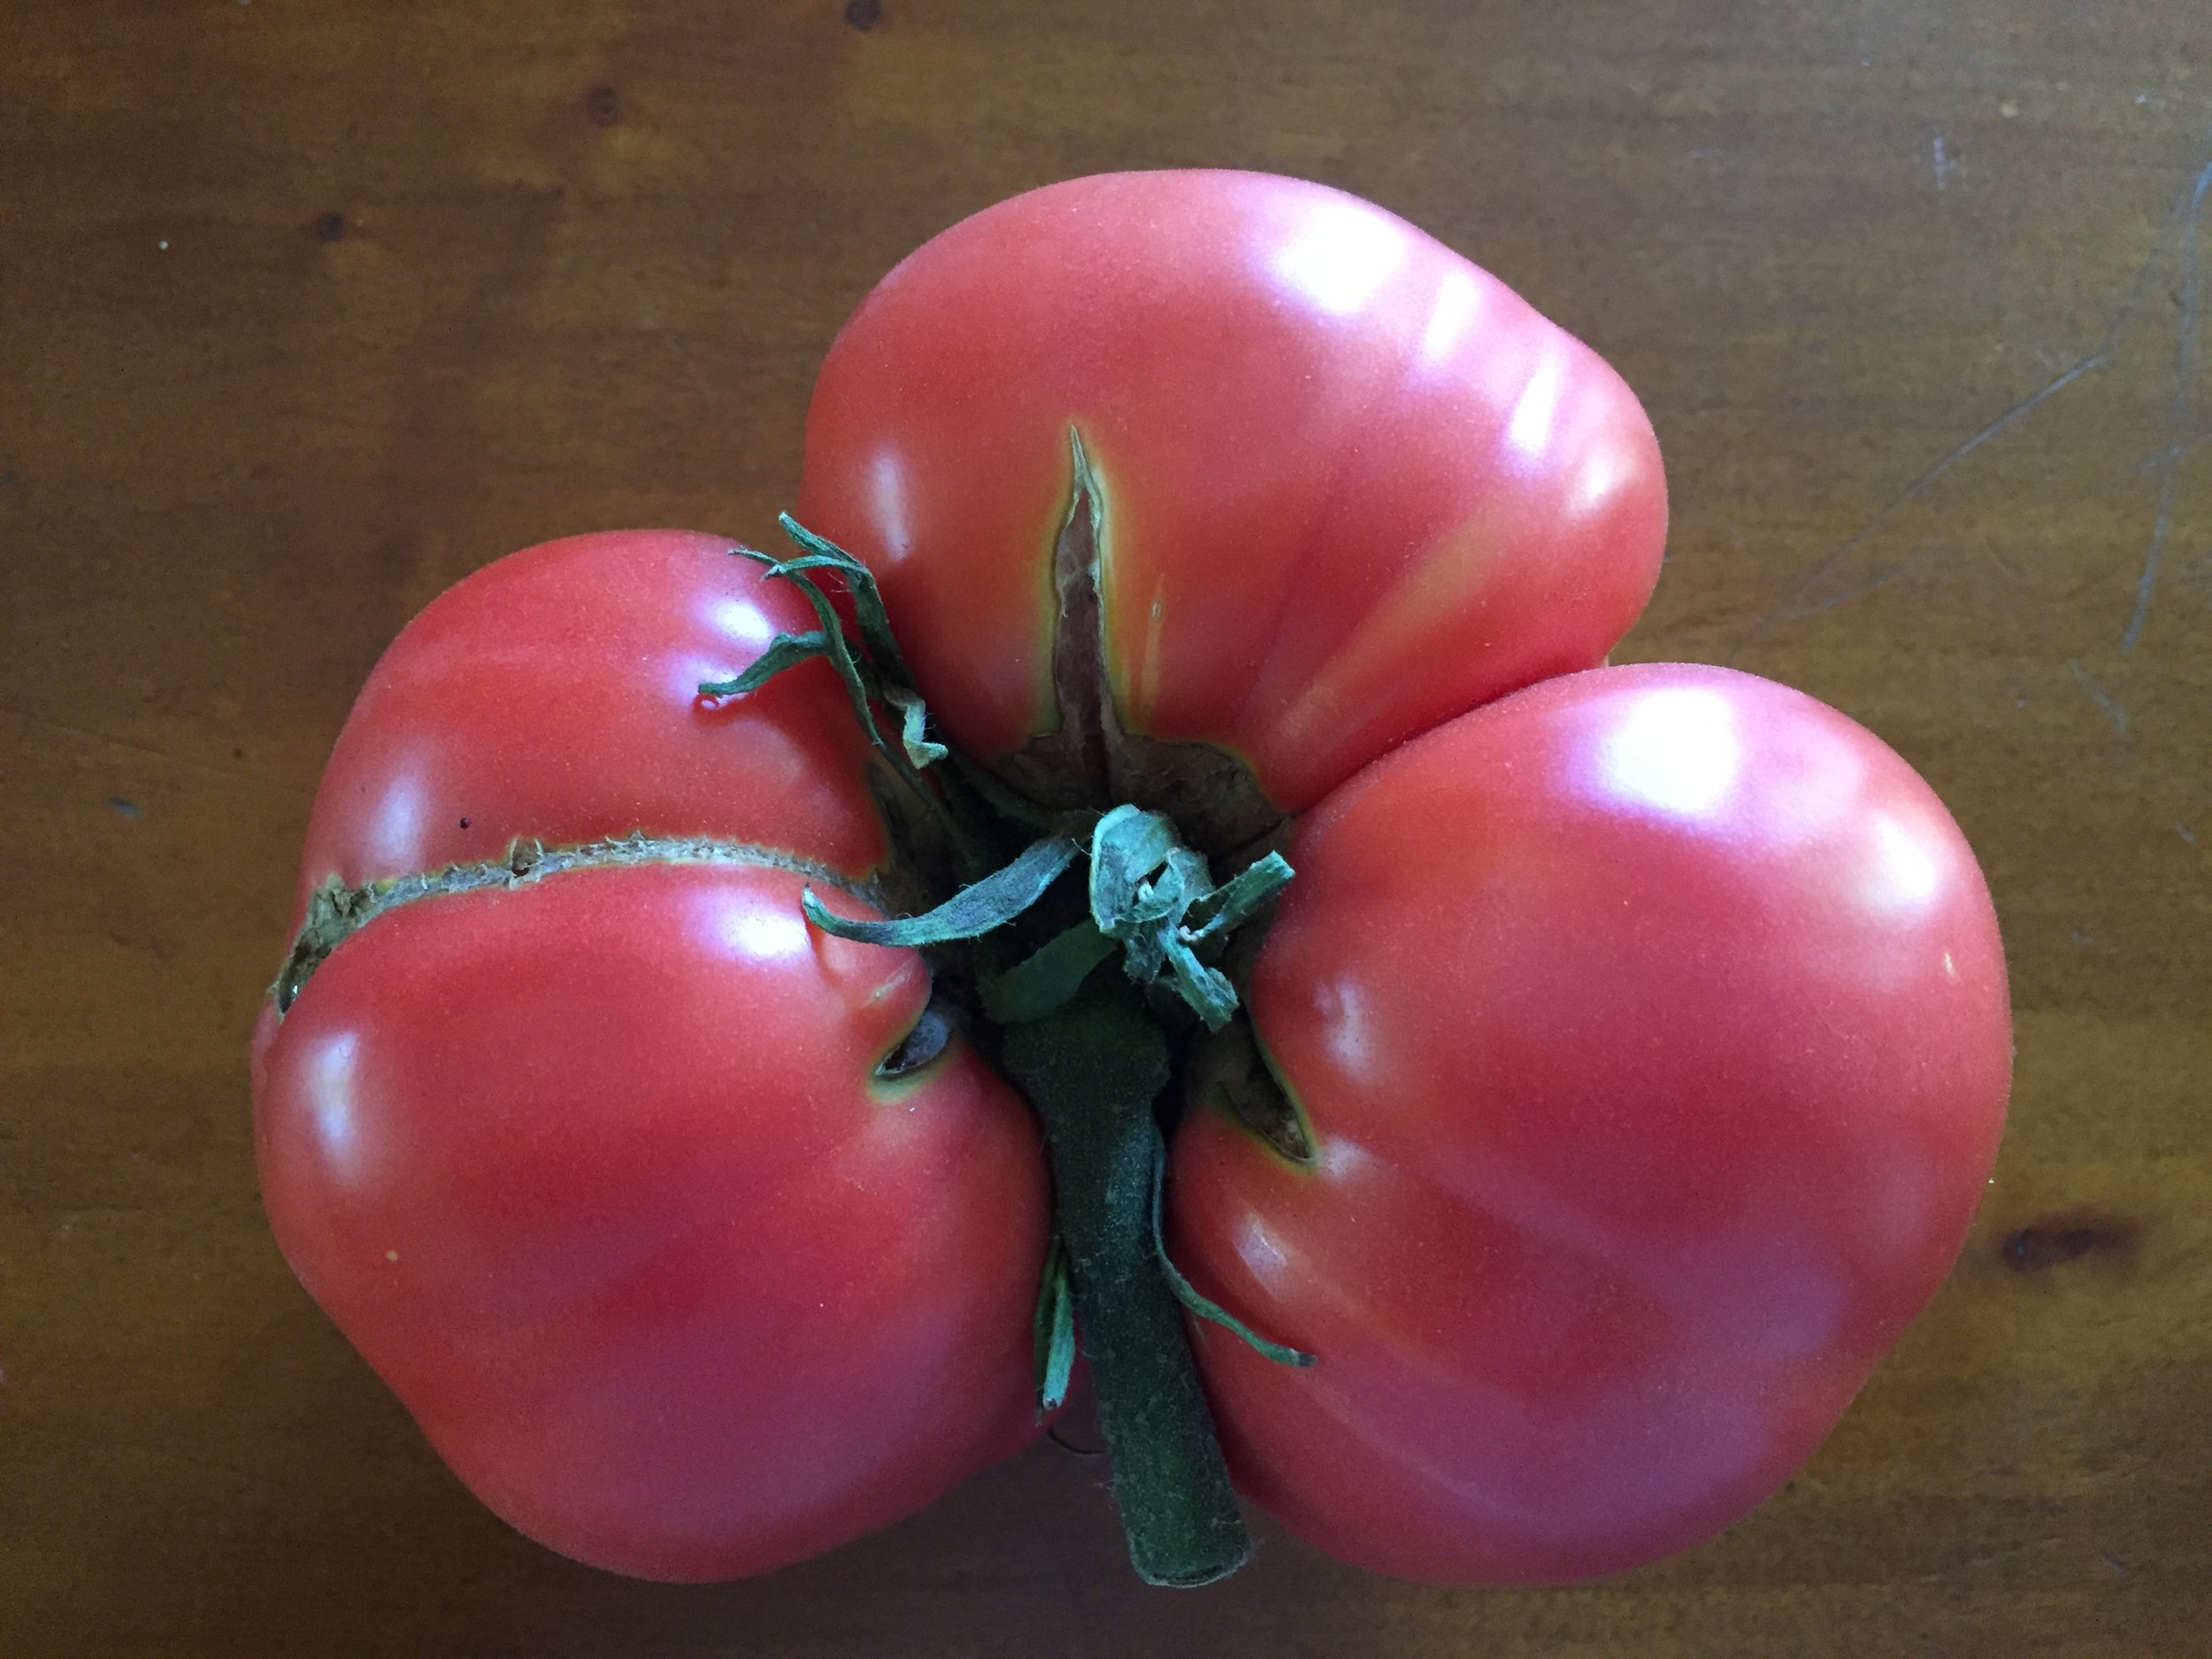 The biggest tomato yet - a variety called 'Dester' - this one is over a pound.